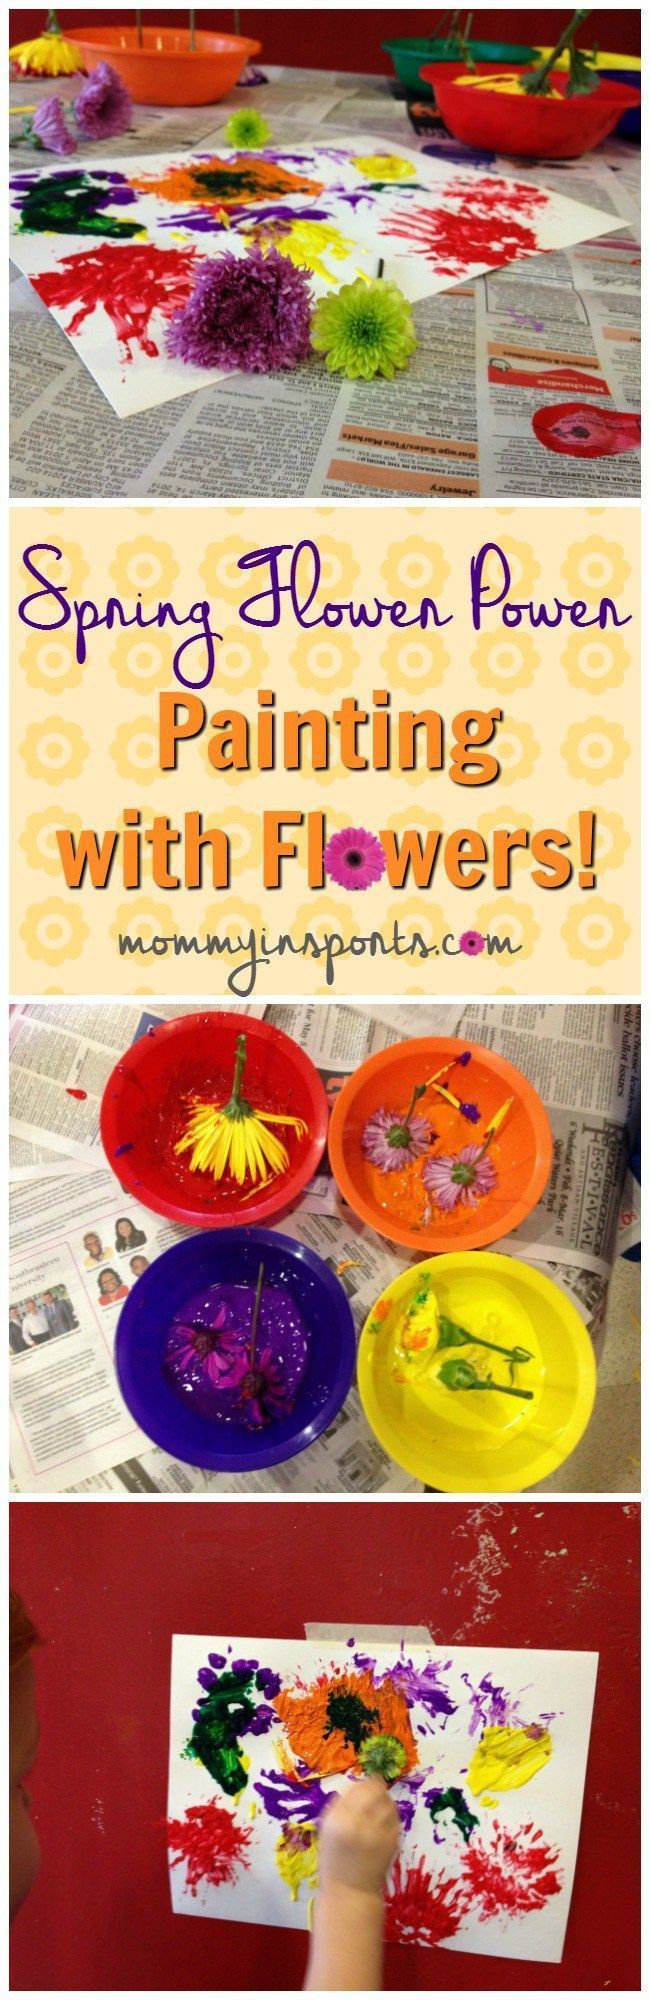 Looking for some fun ways to bring spring to your home  Why not paint withThe 372 best images about Crafts for the Kids on Pinterest   Kid  . Fun Crafts For Your Home. Home Design Ideas